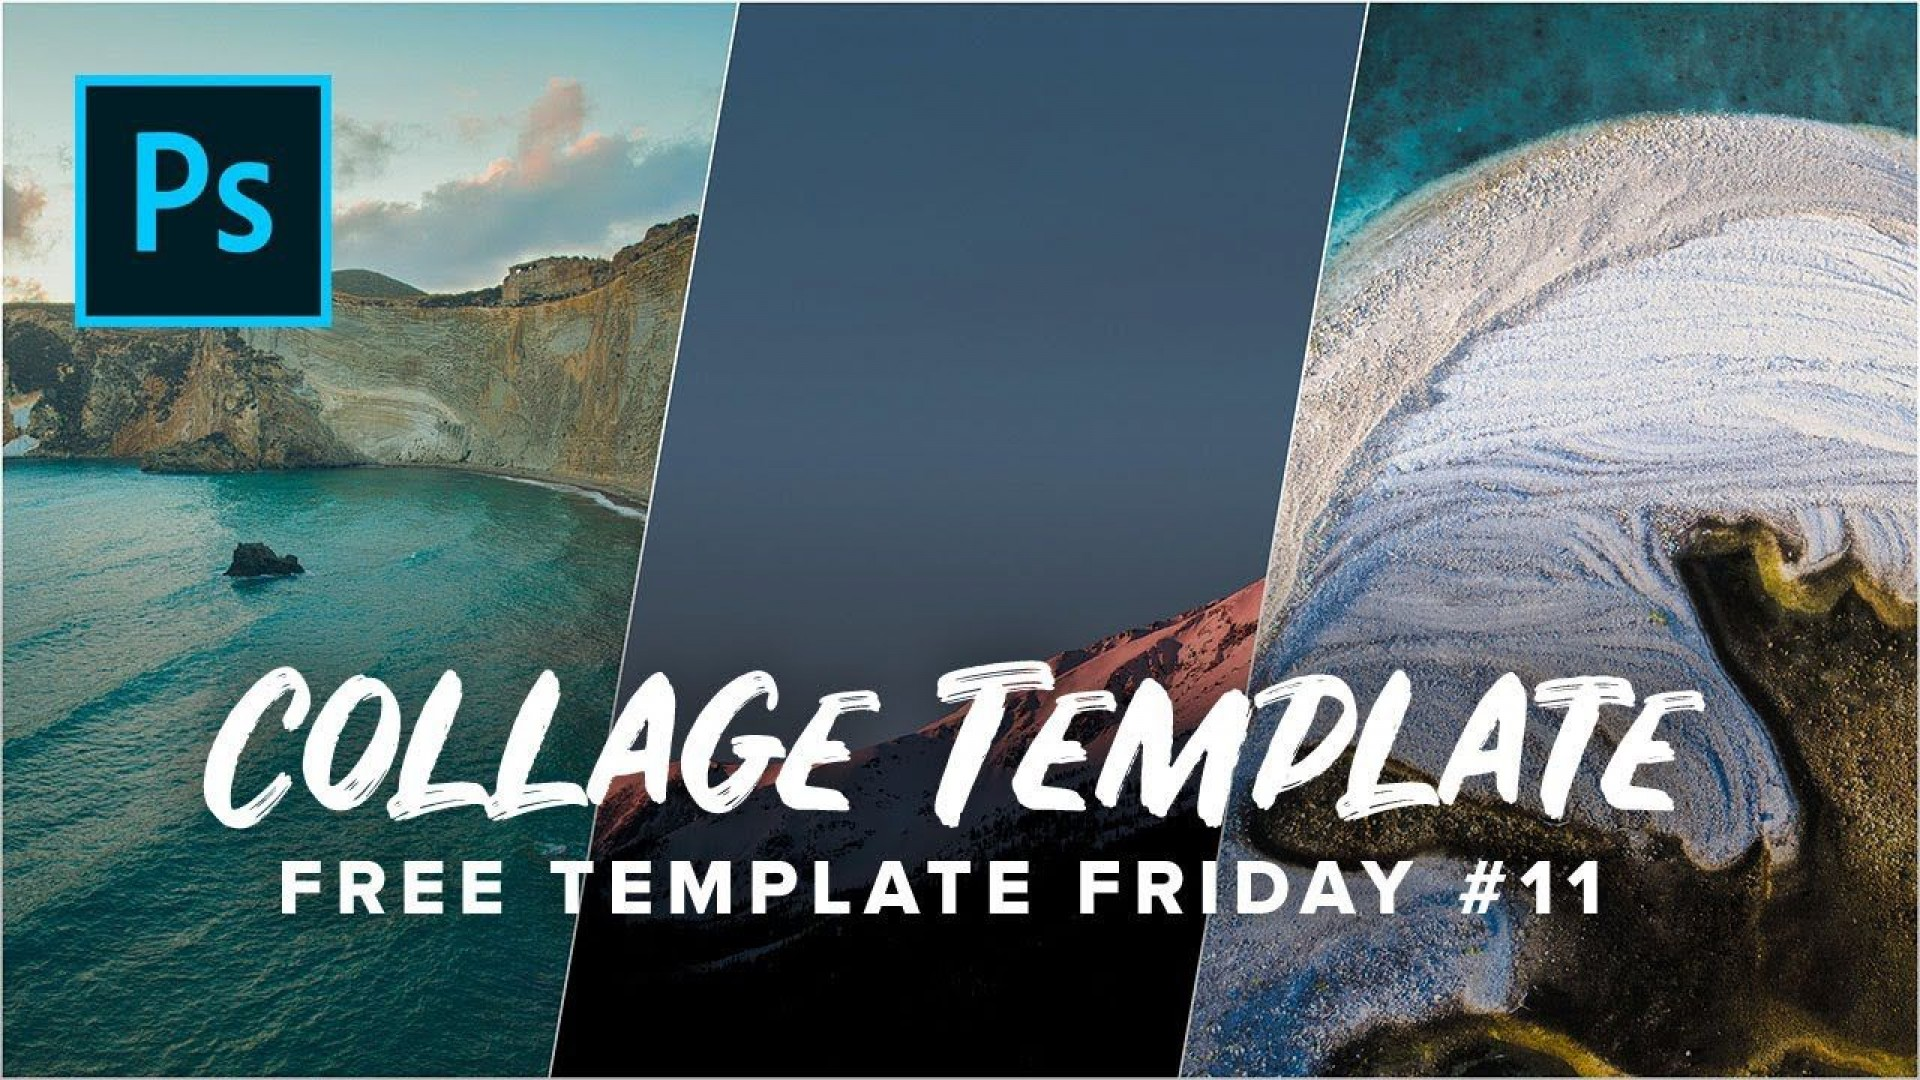 005 Remarkable Free Picture Collage Template High Resolution  Photo After Effect Maker Download1920